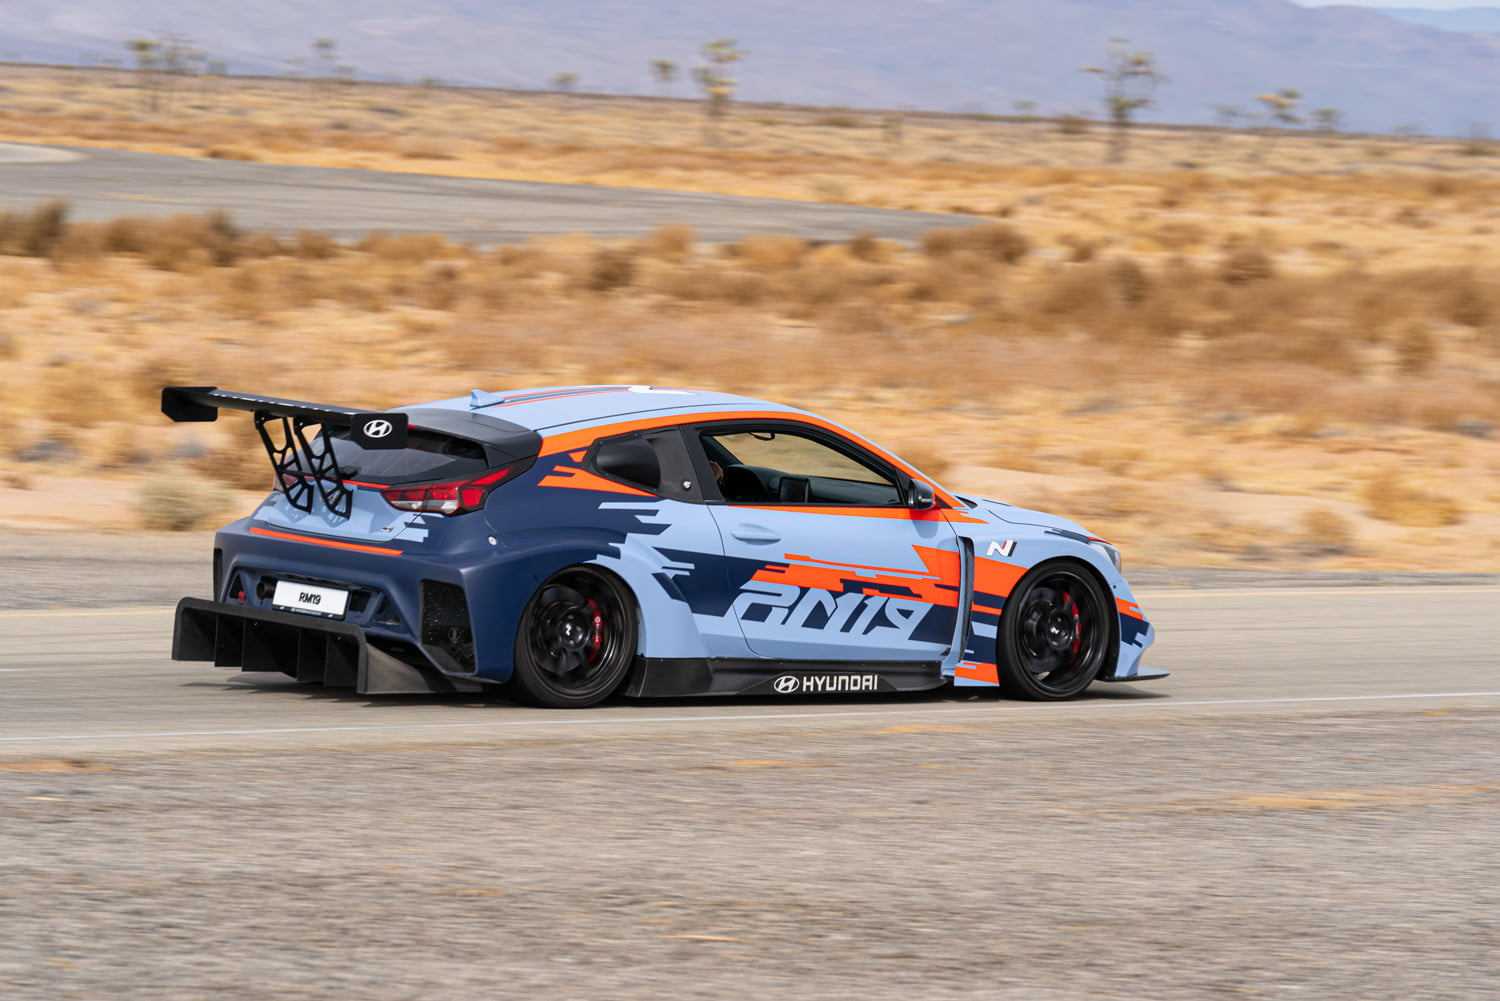 mid engined hyundai rm19 hot hatch unveiled at los angeles auto show 3